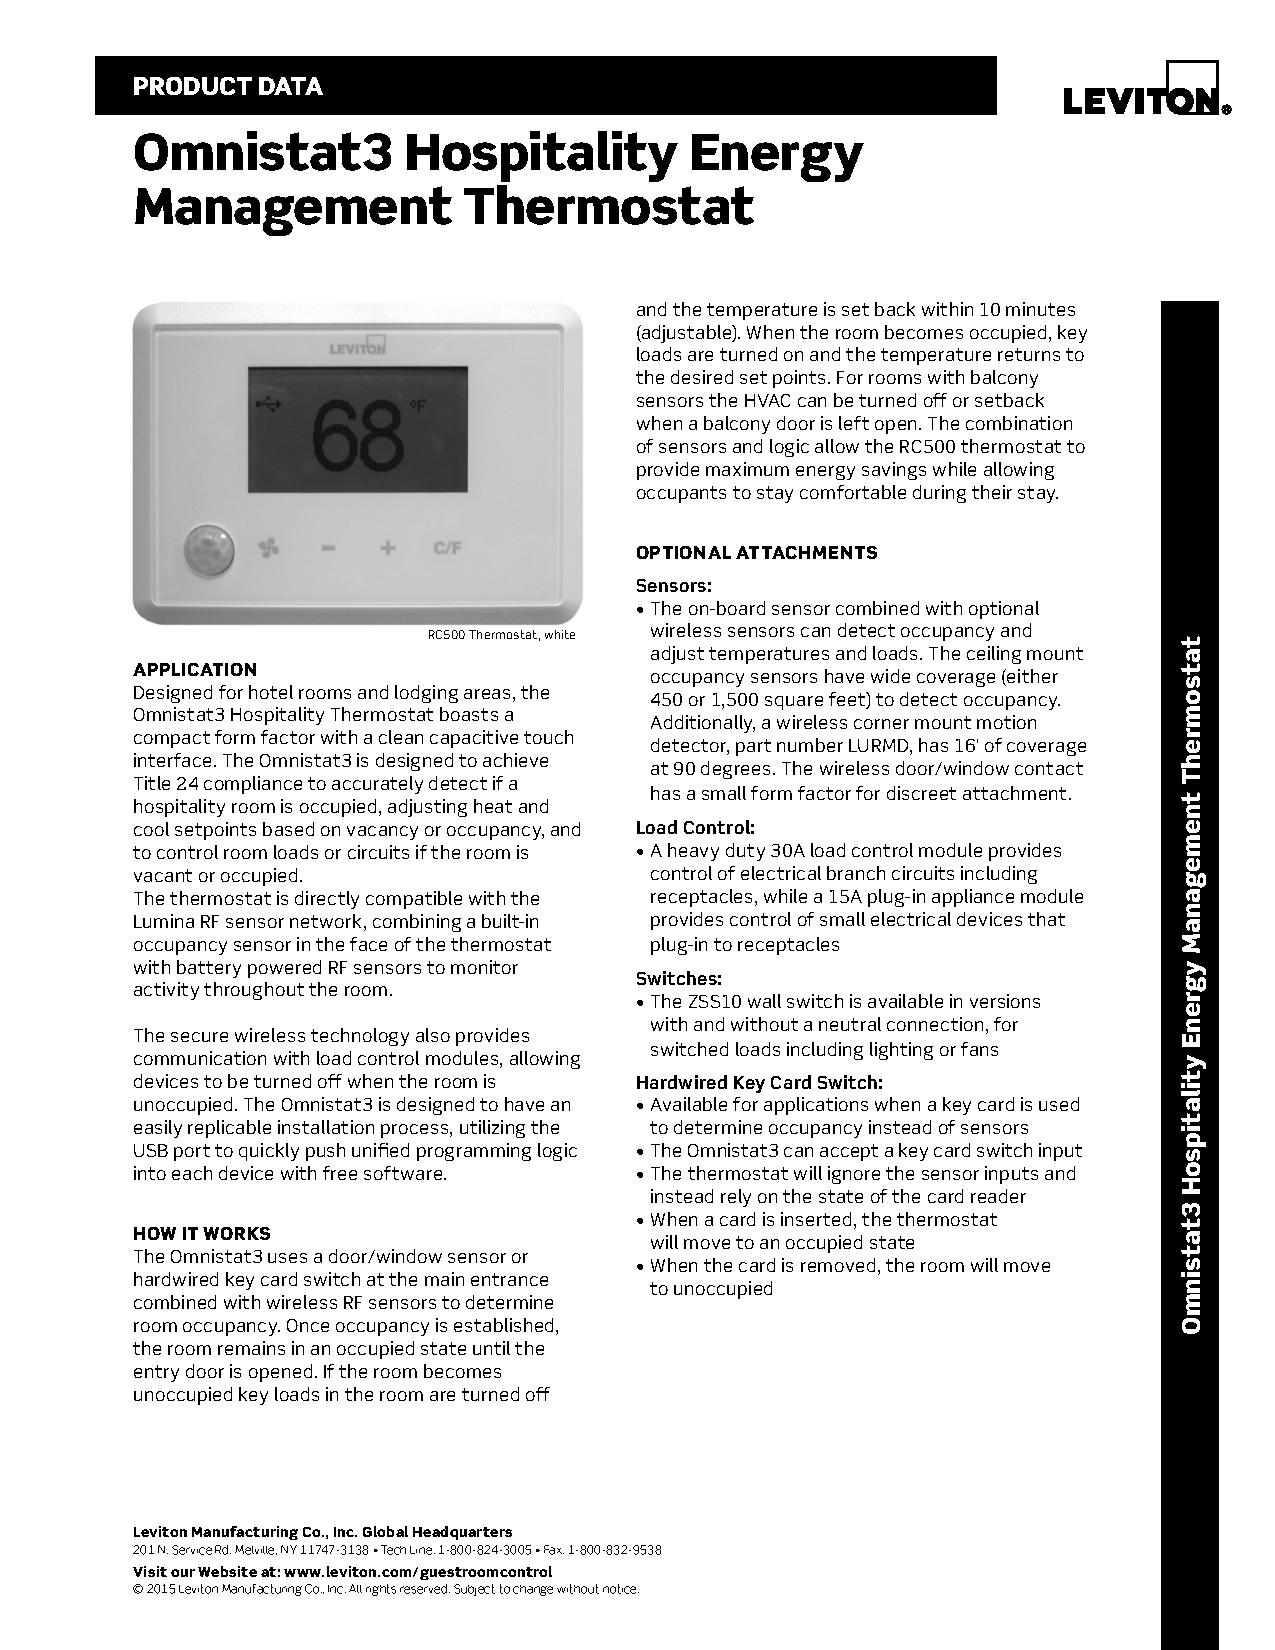 Leviton Omnistat3 RC500 Wireless Thermostat for Energy Efficiency ...